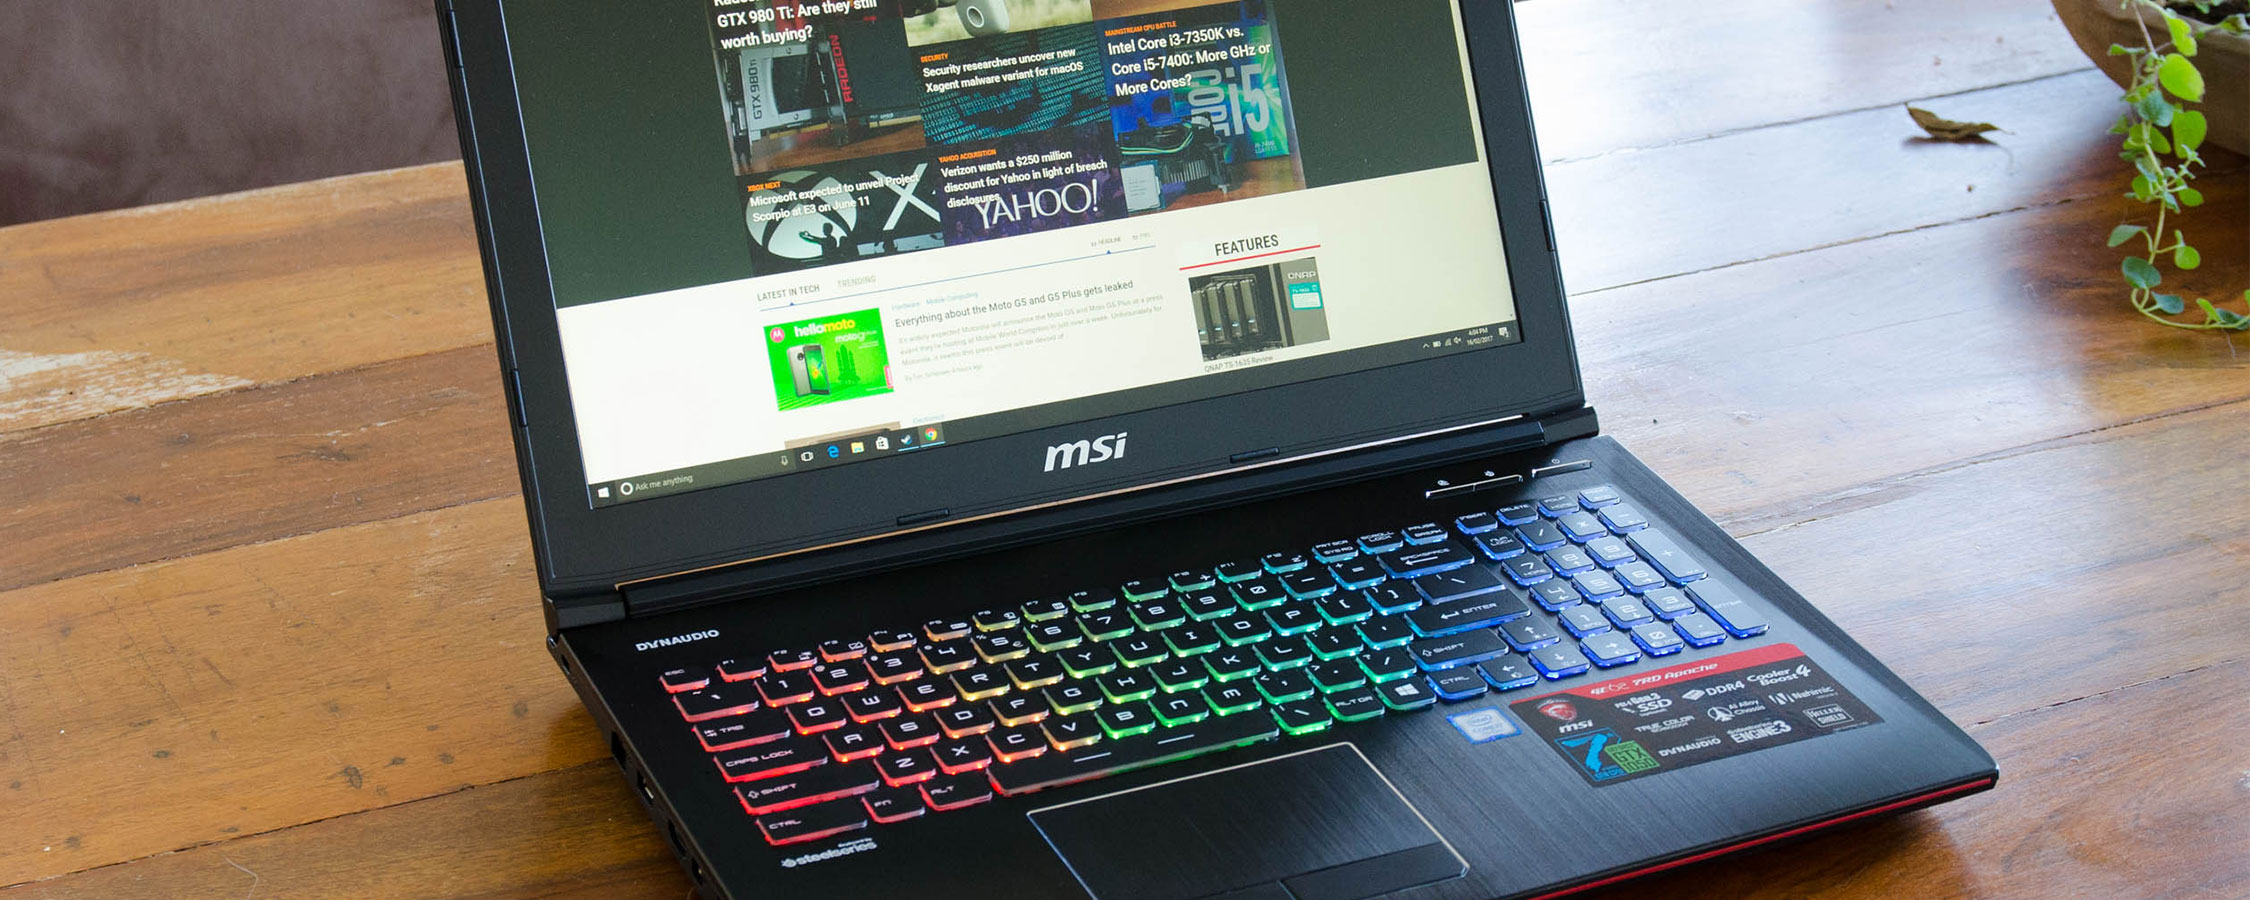 Support For U270 | Laptops - The best gaming laptop provider | MSI Global